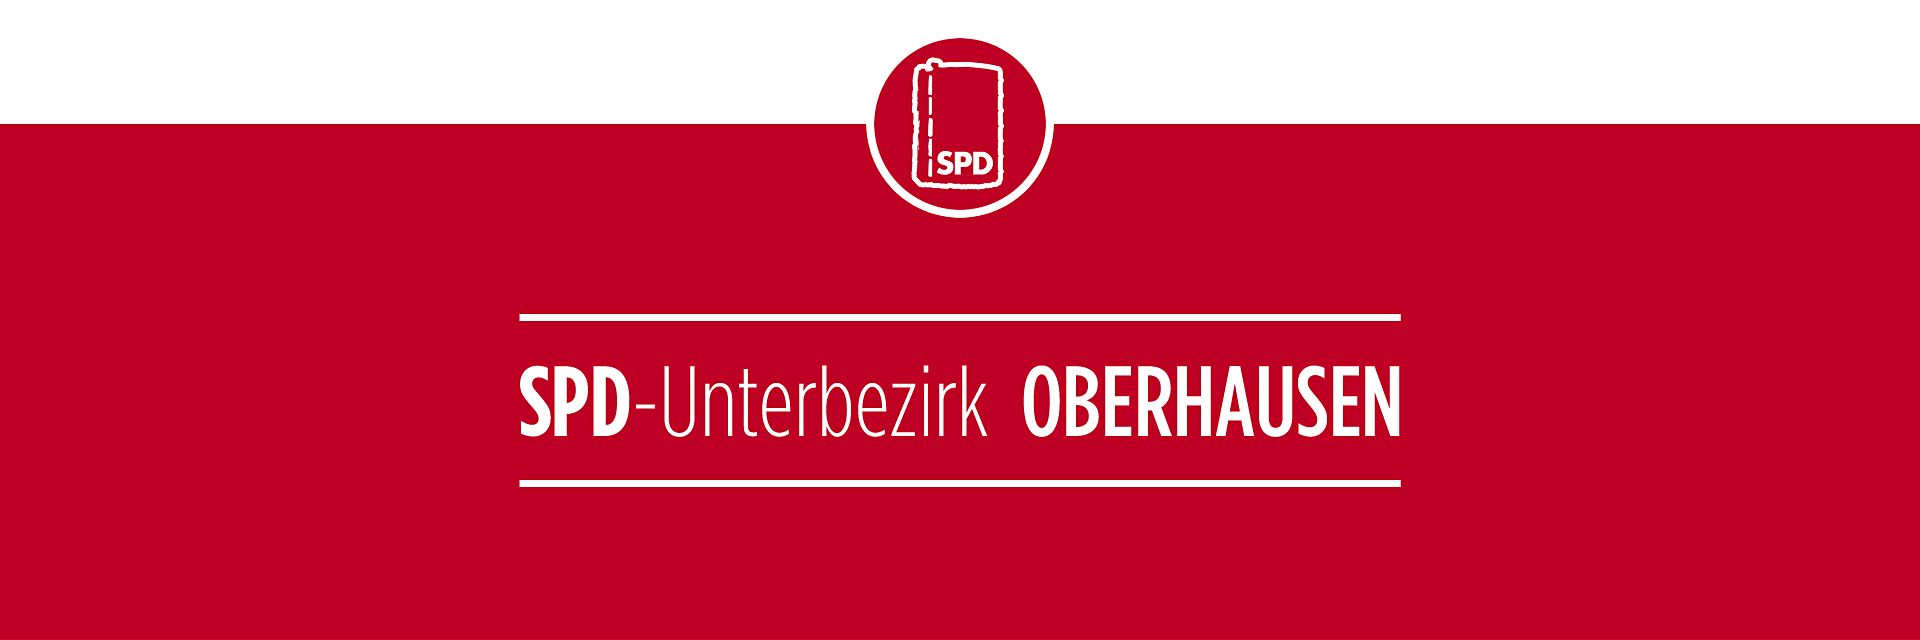 spd-oberhausen.de